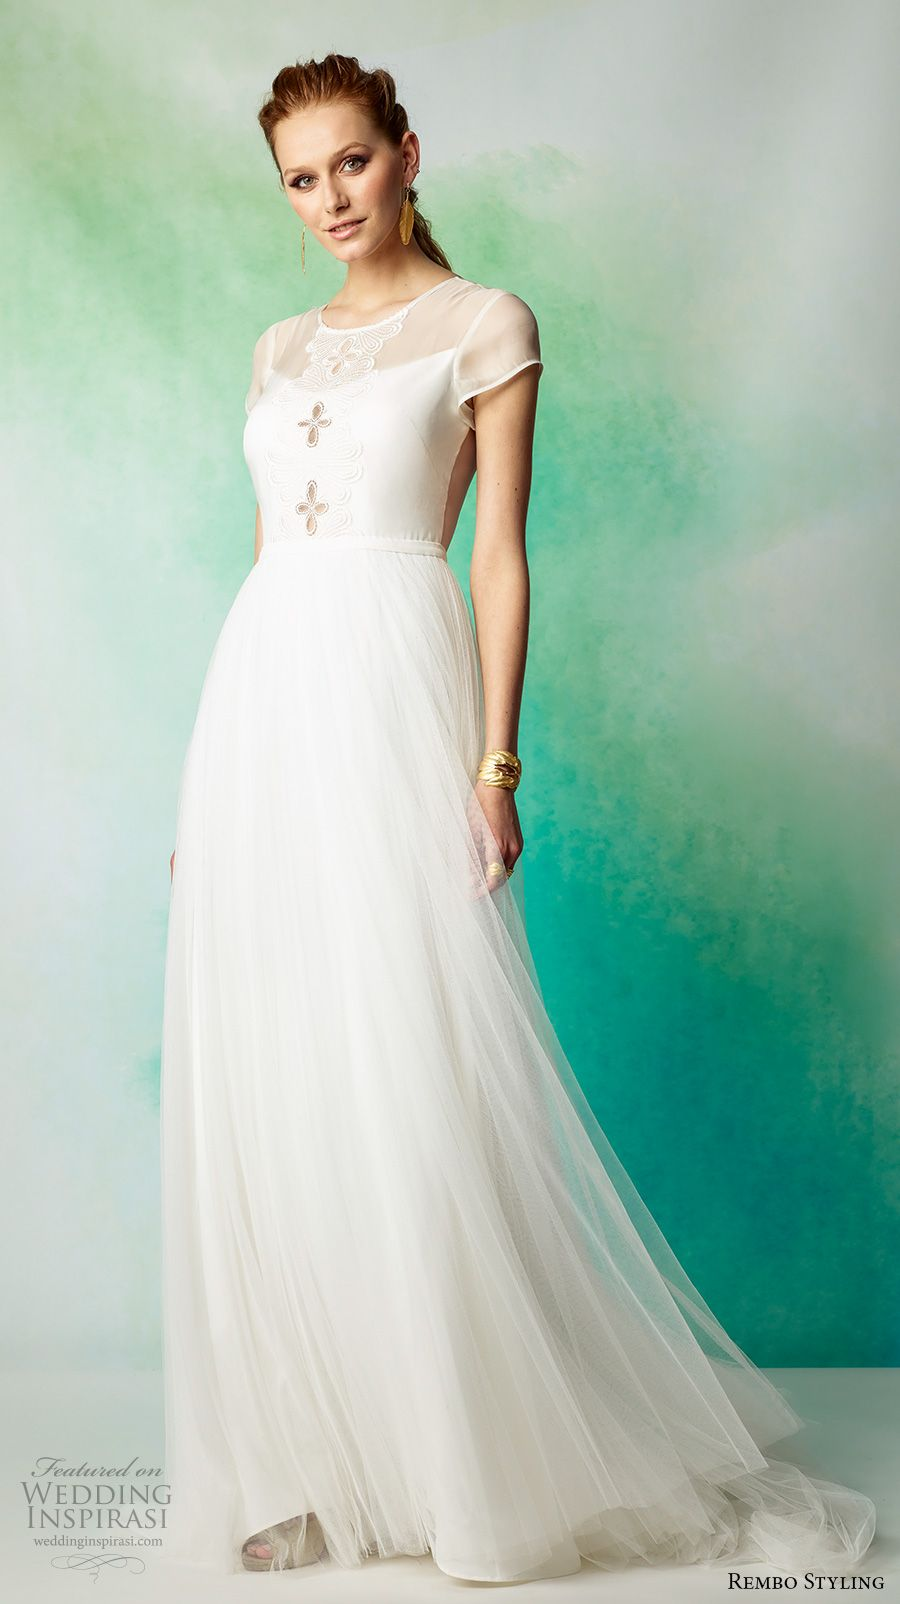 Teal and white wedding dresses  Rembo Styling  Wedding Dresses